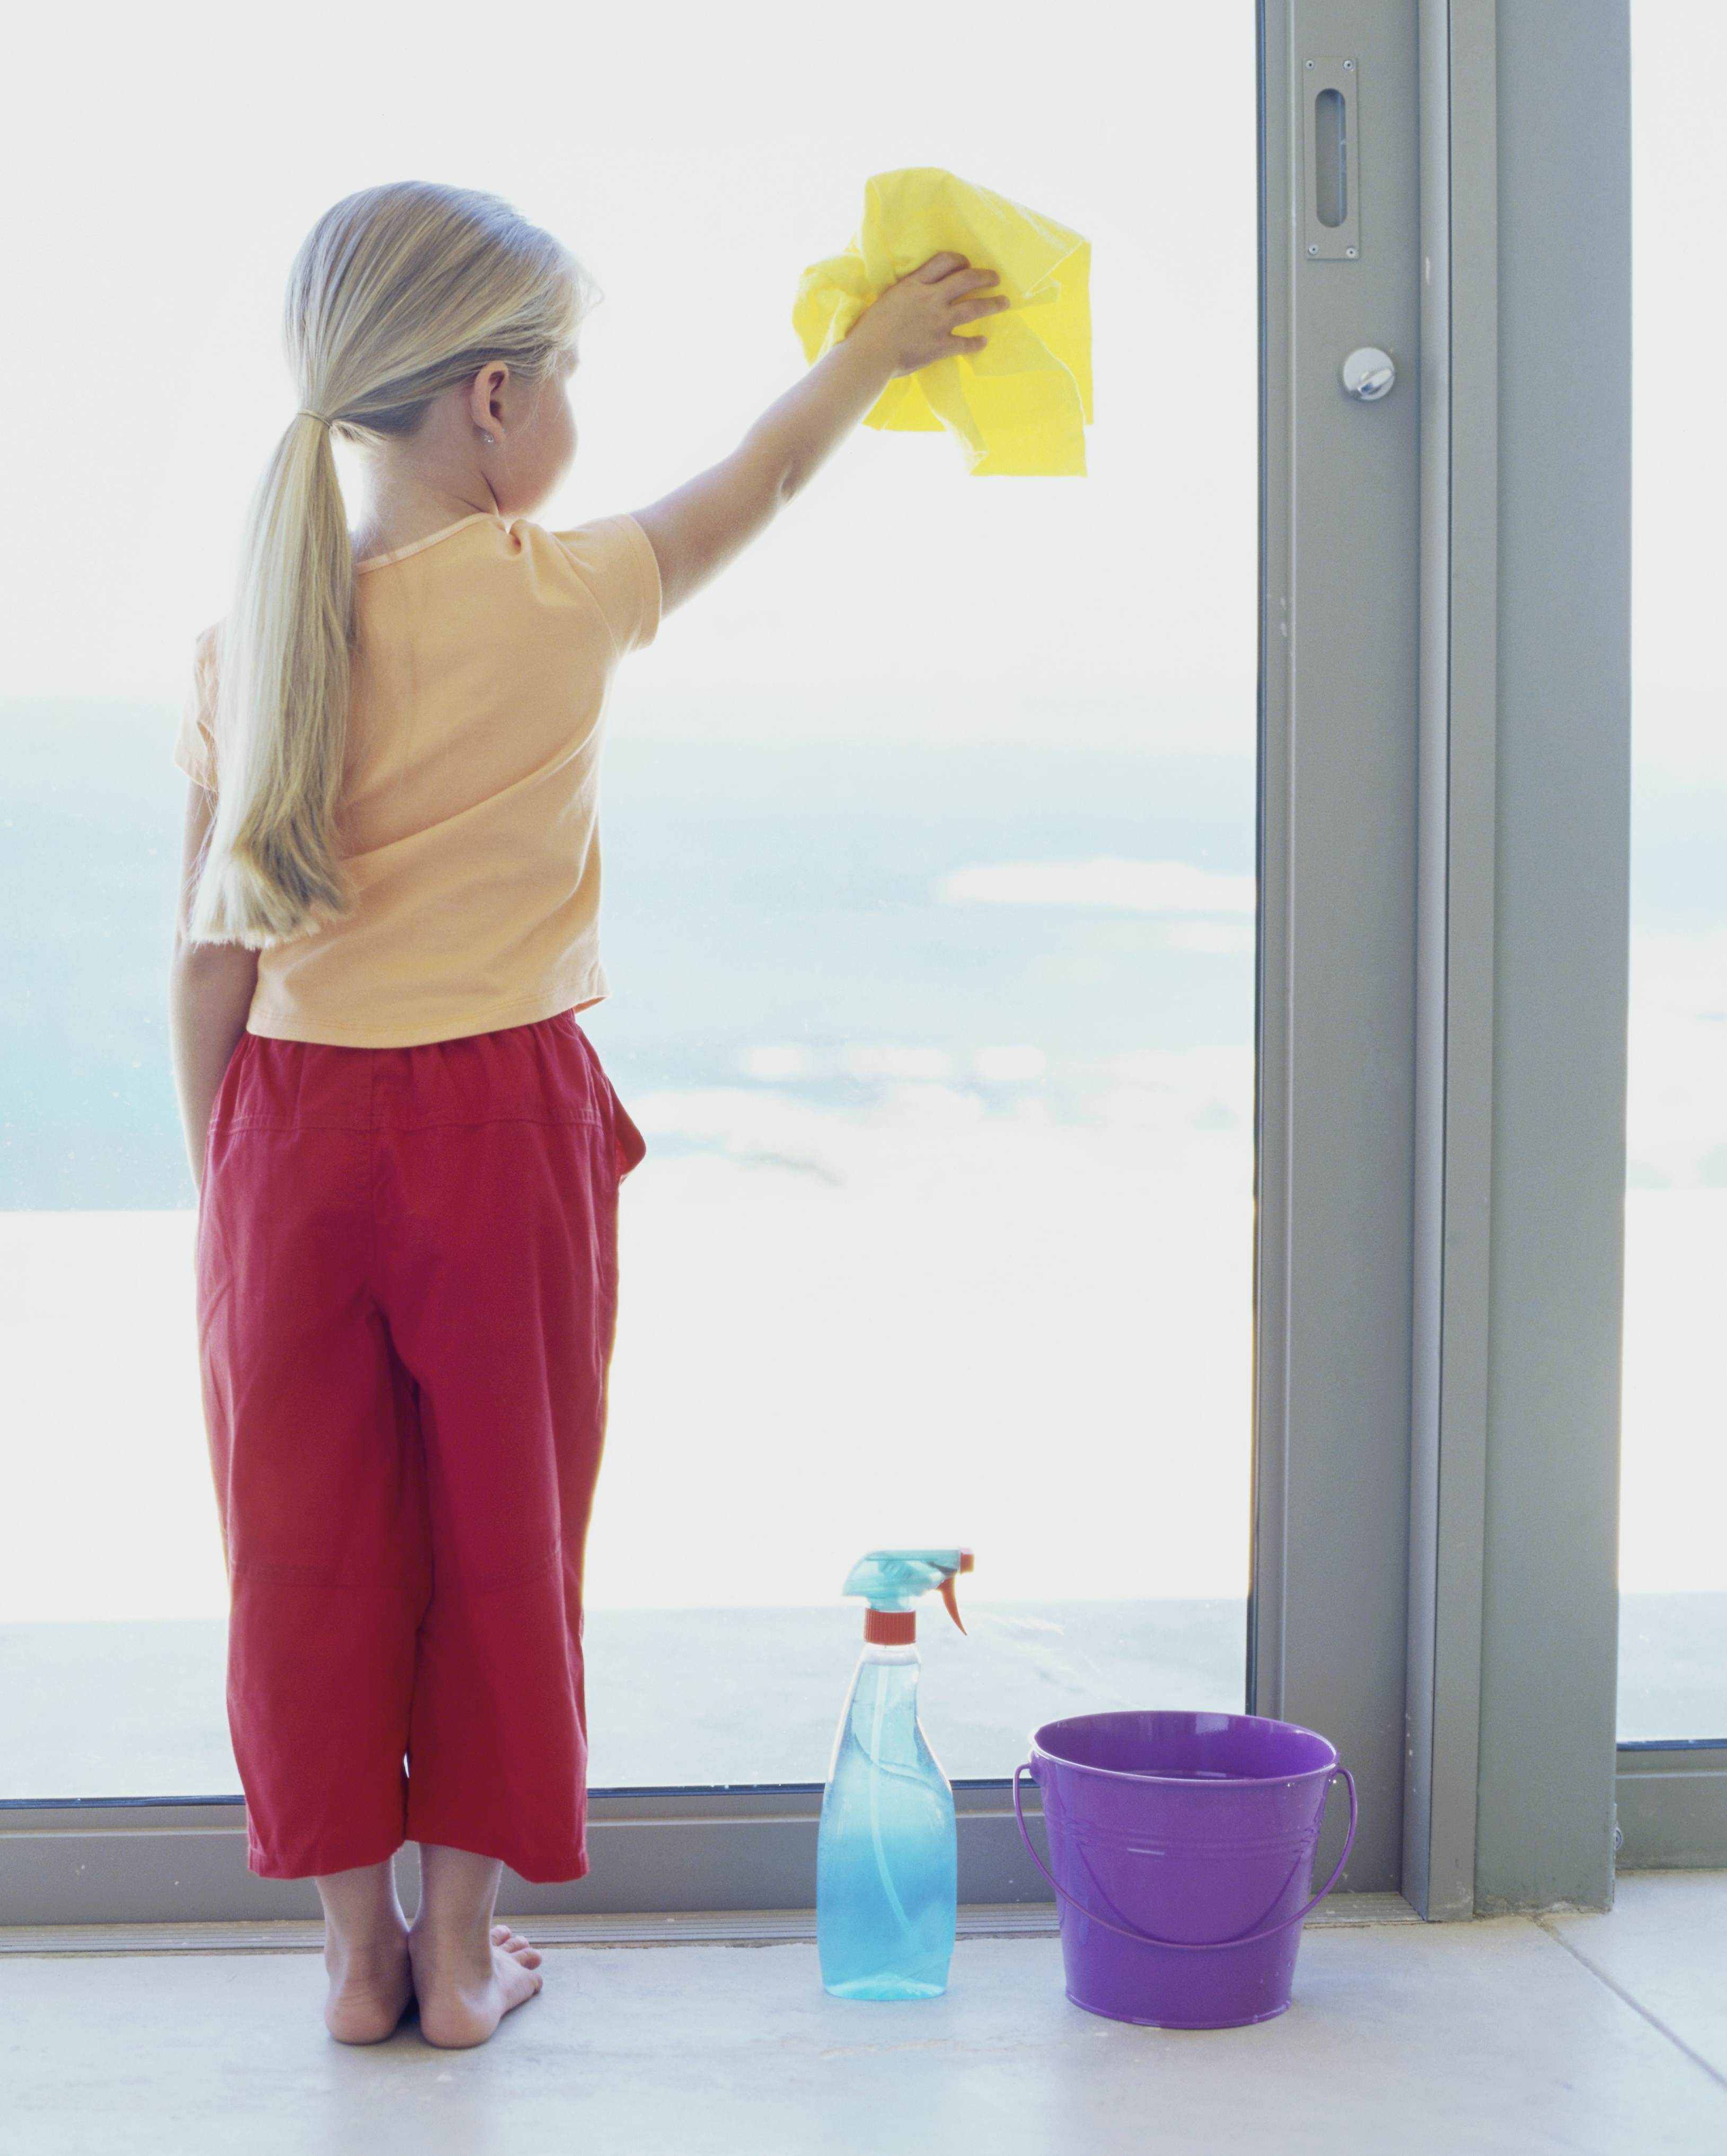 A young girl washing windows